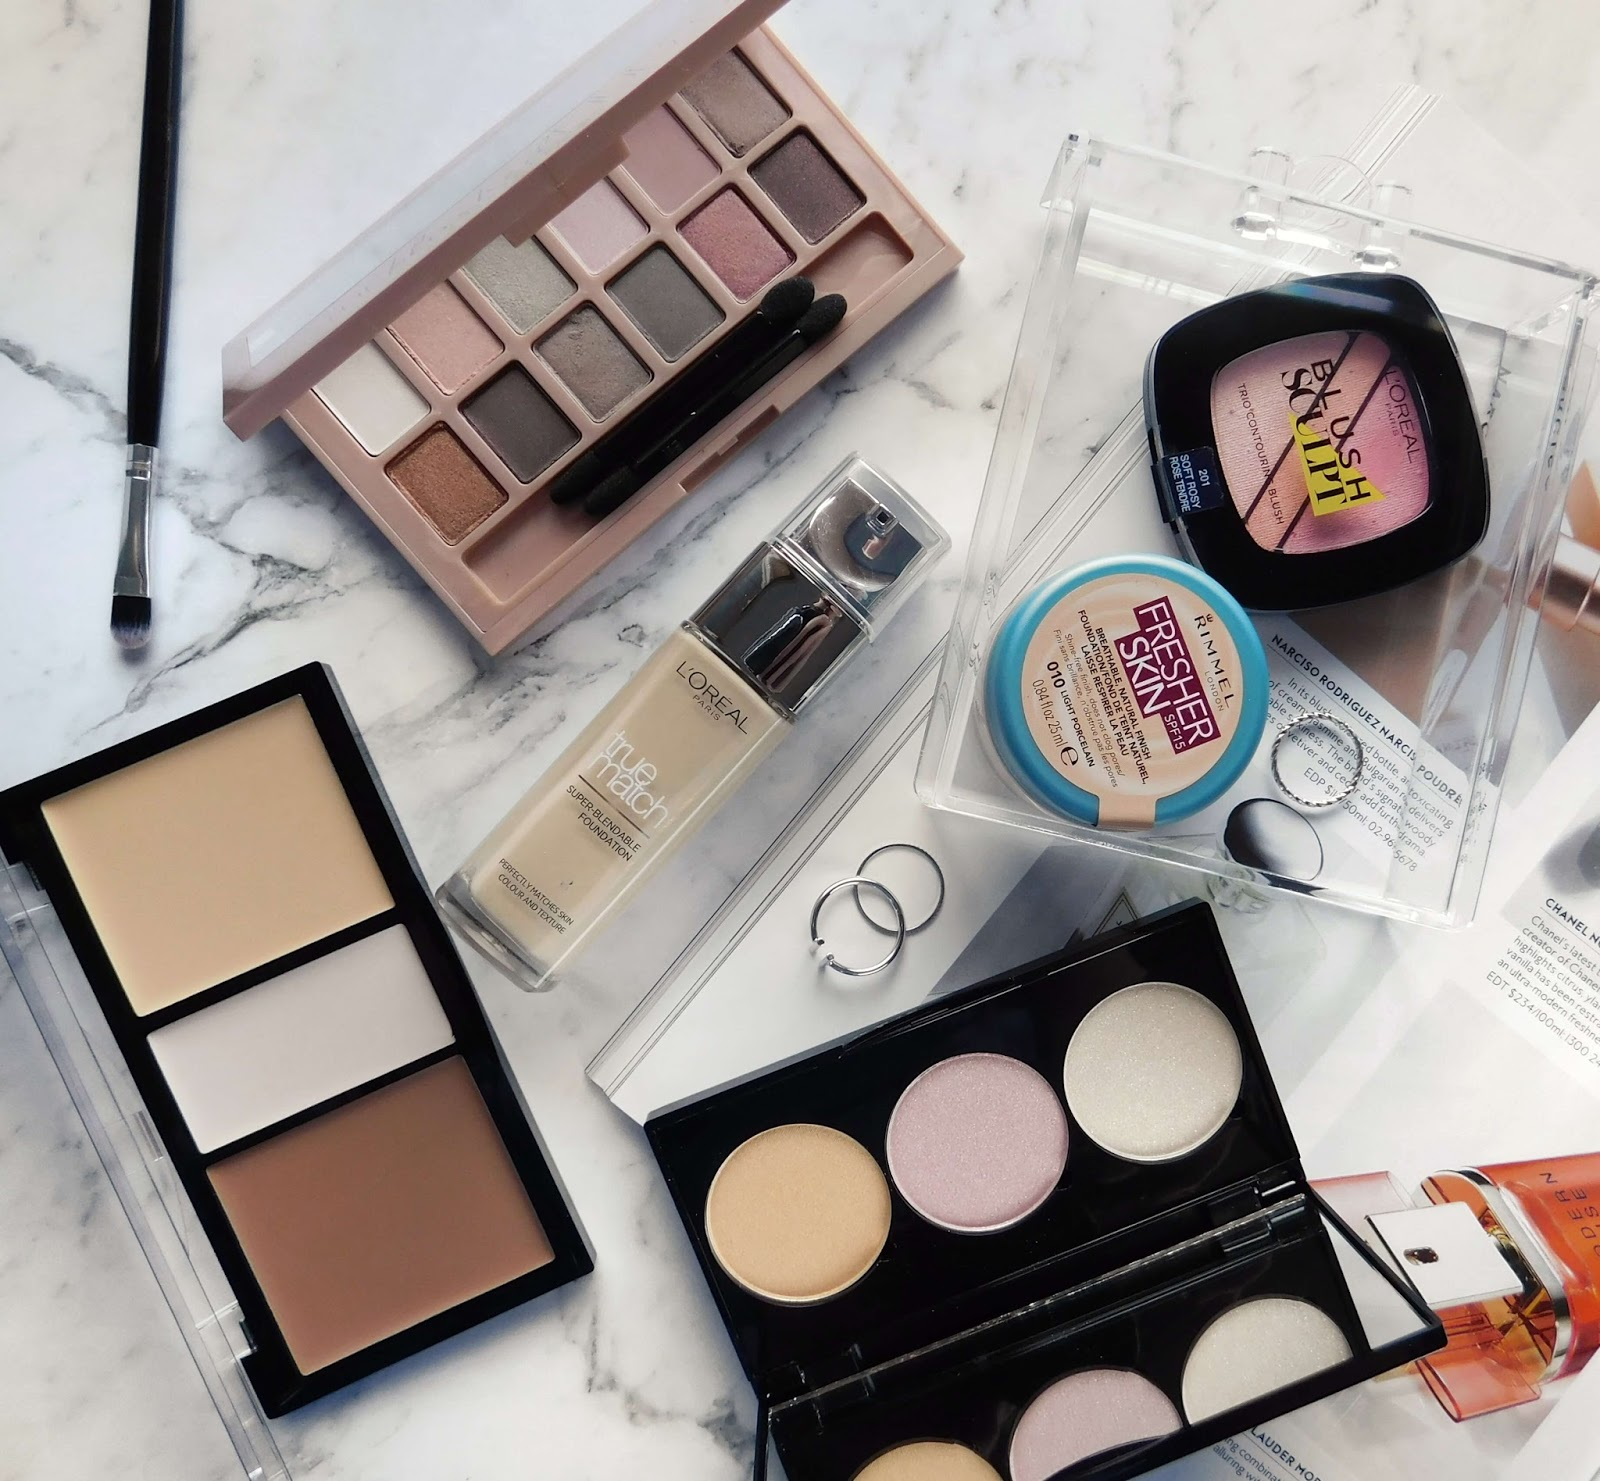 Whats New In My Makeup Stash | March | BlonDees Beauty